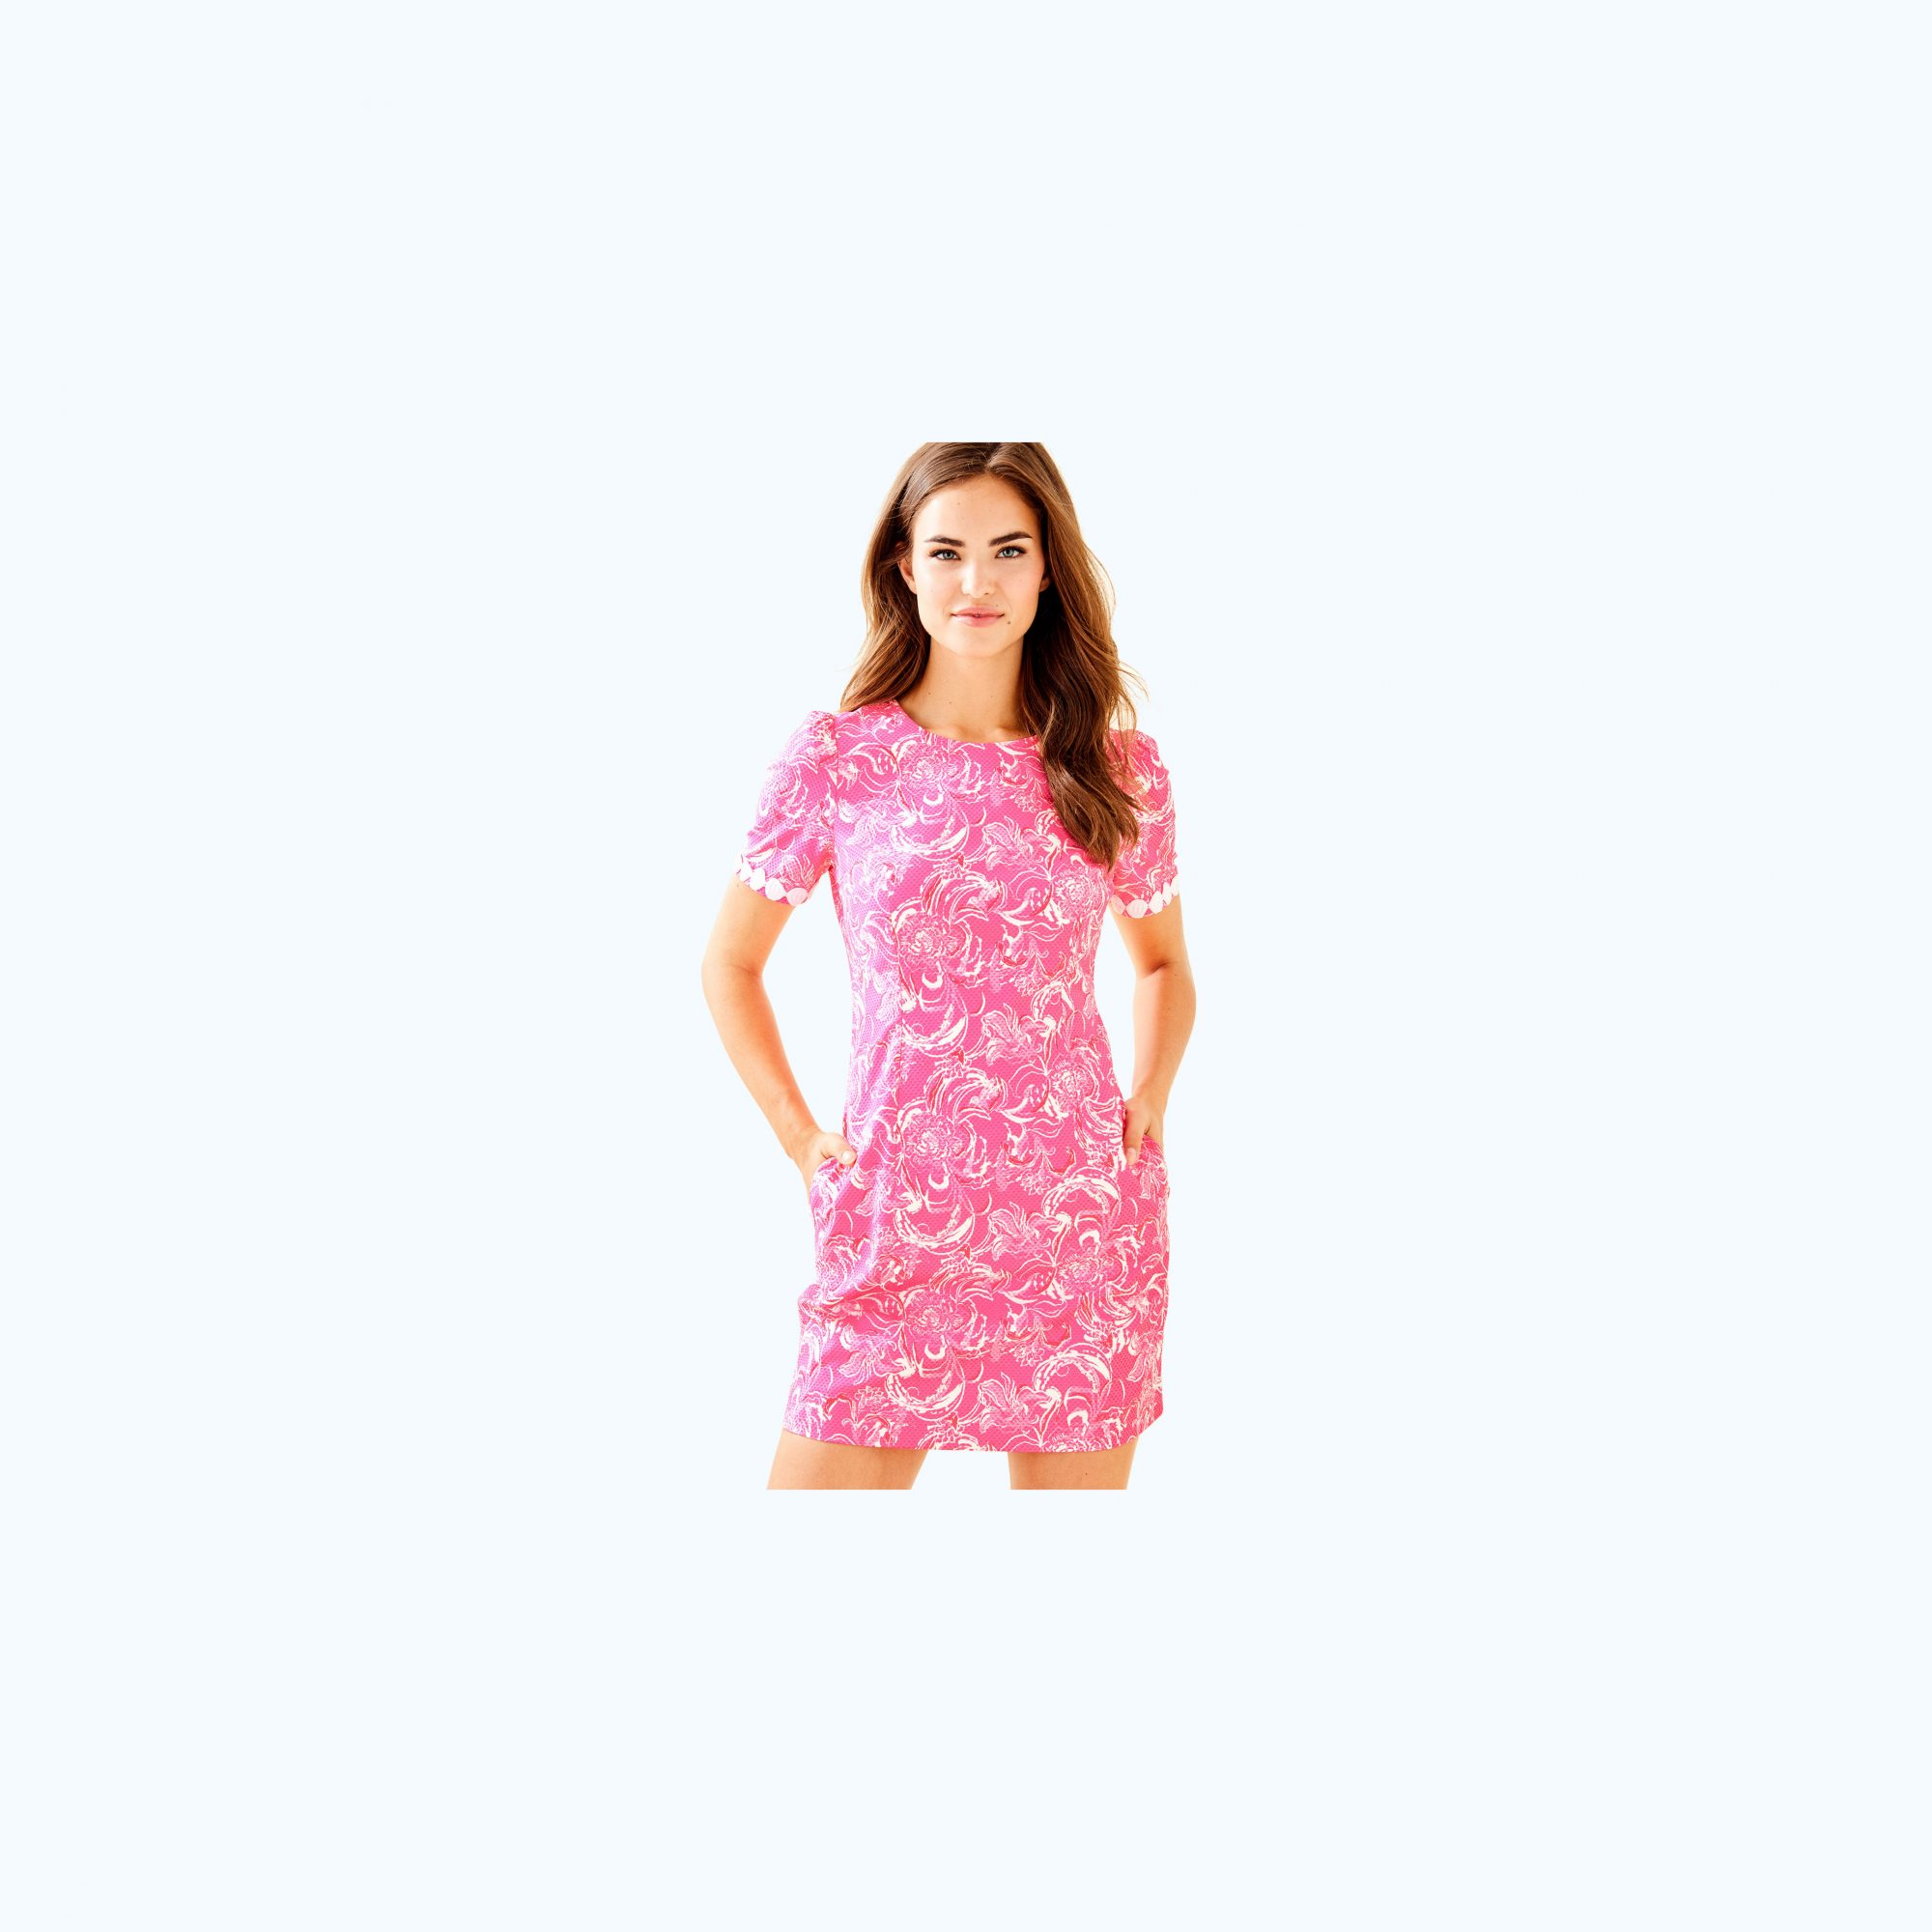 Best Deals on Lilly Pulitzer Clothing